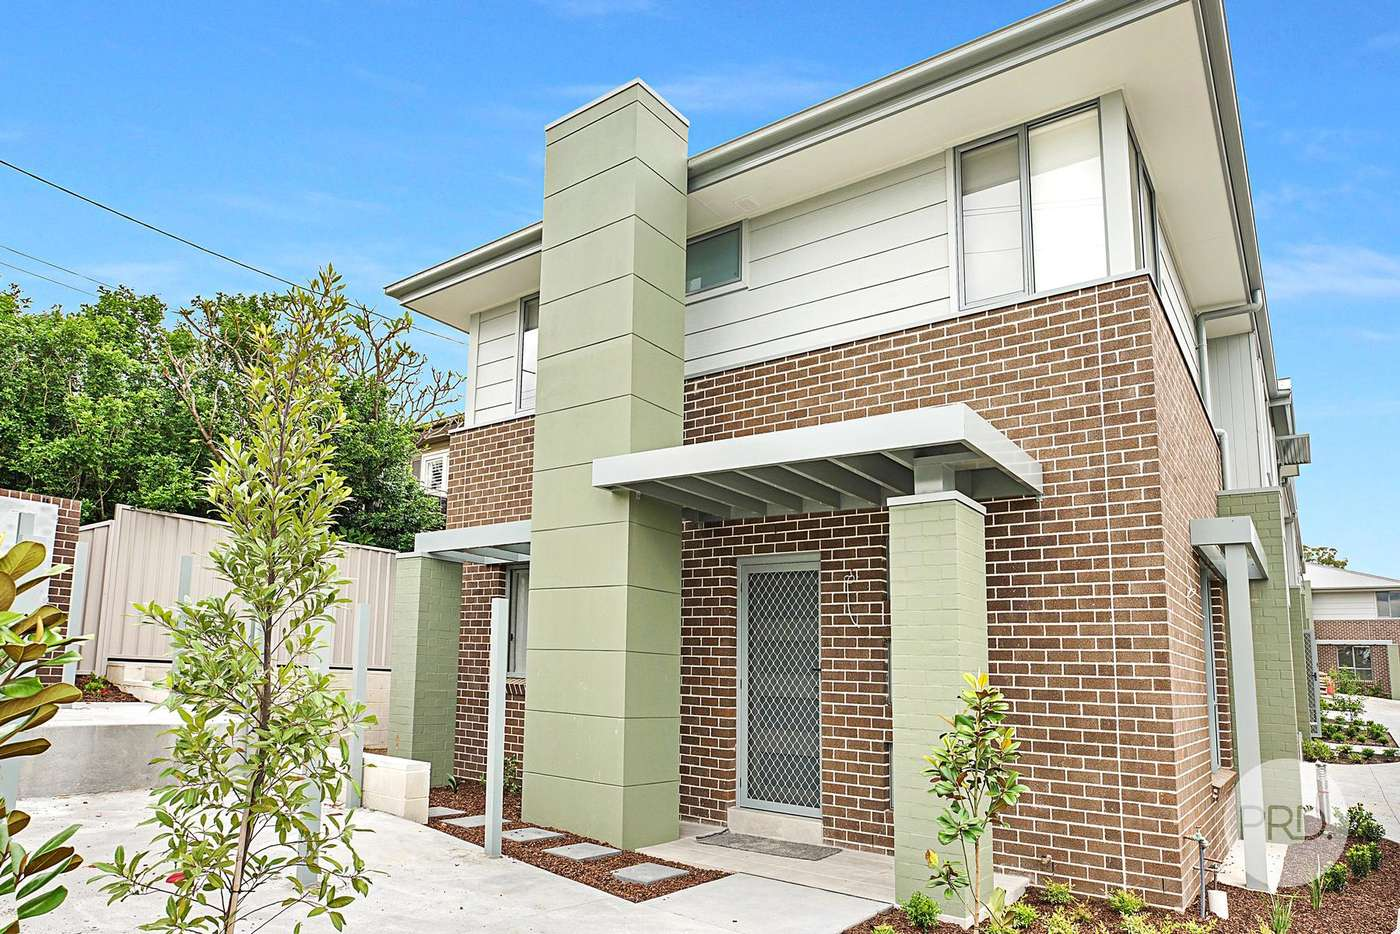 Main view of Homely house listing, 9/30 King Street, St Marys, NSW 2760